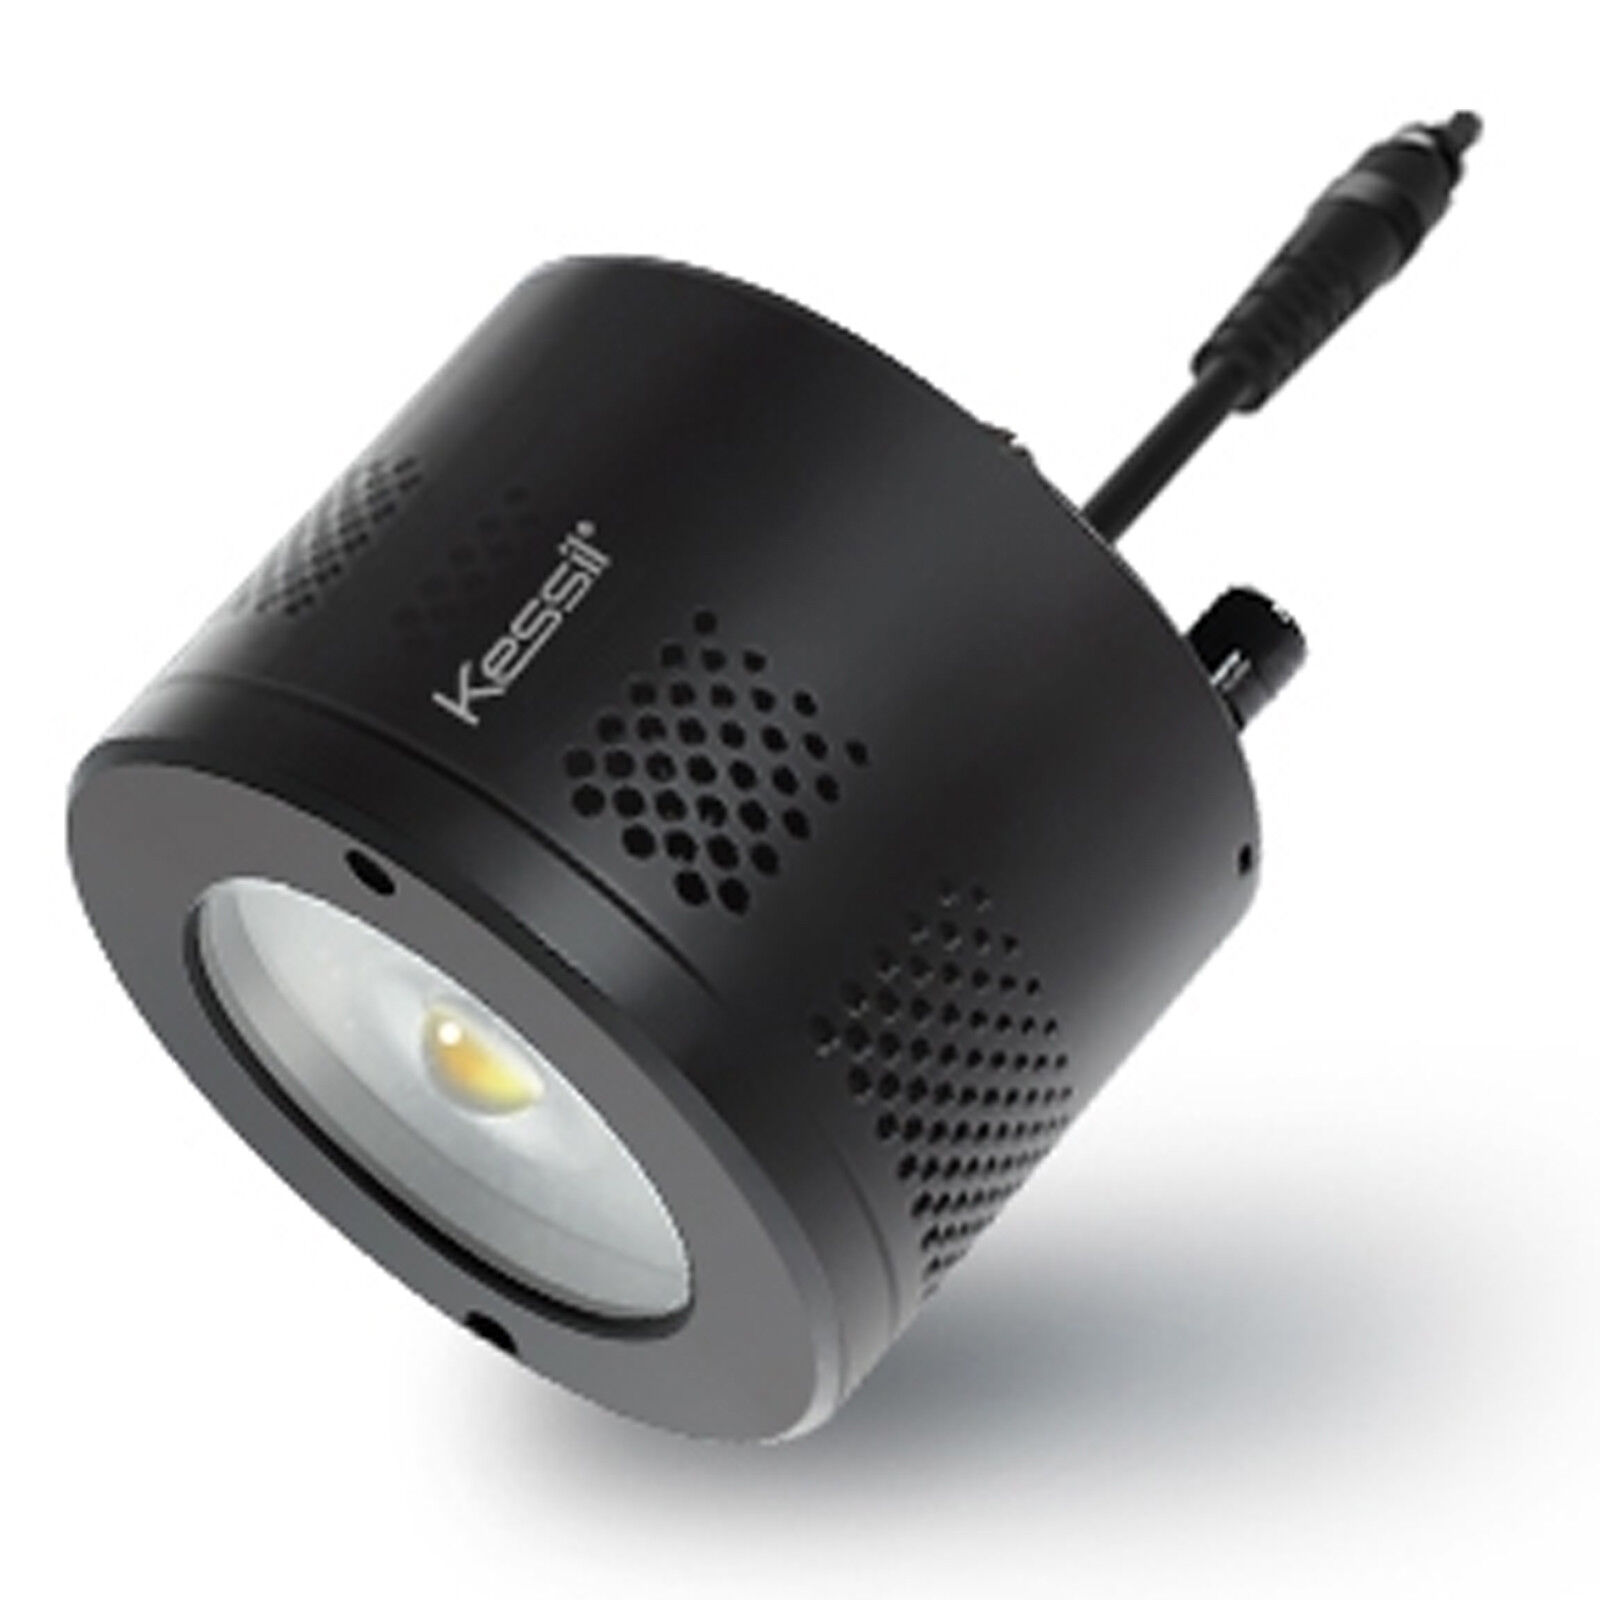 Kessil LED A360We Tuna Sun 90 Watt Freshwater Freshwater Freshwater Full Warranty Free USA Shipping 419ac3